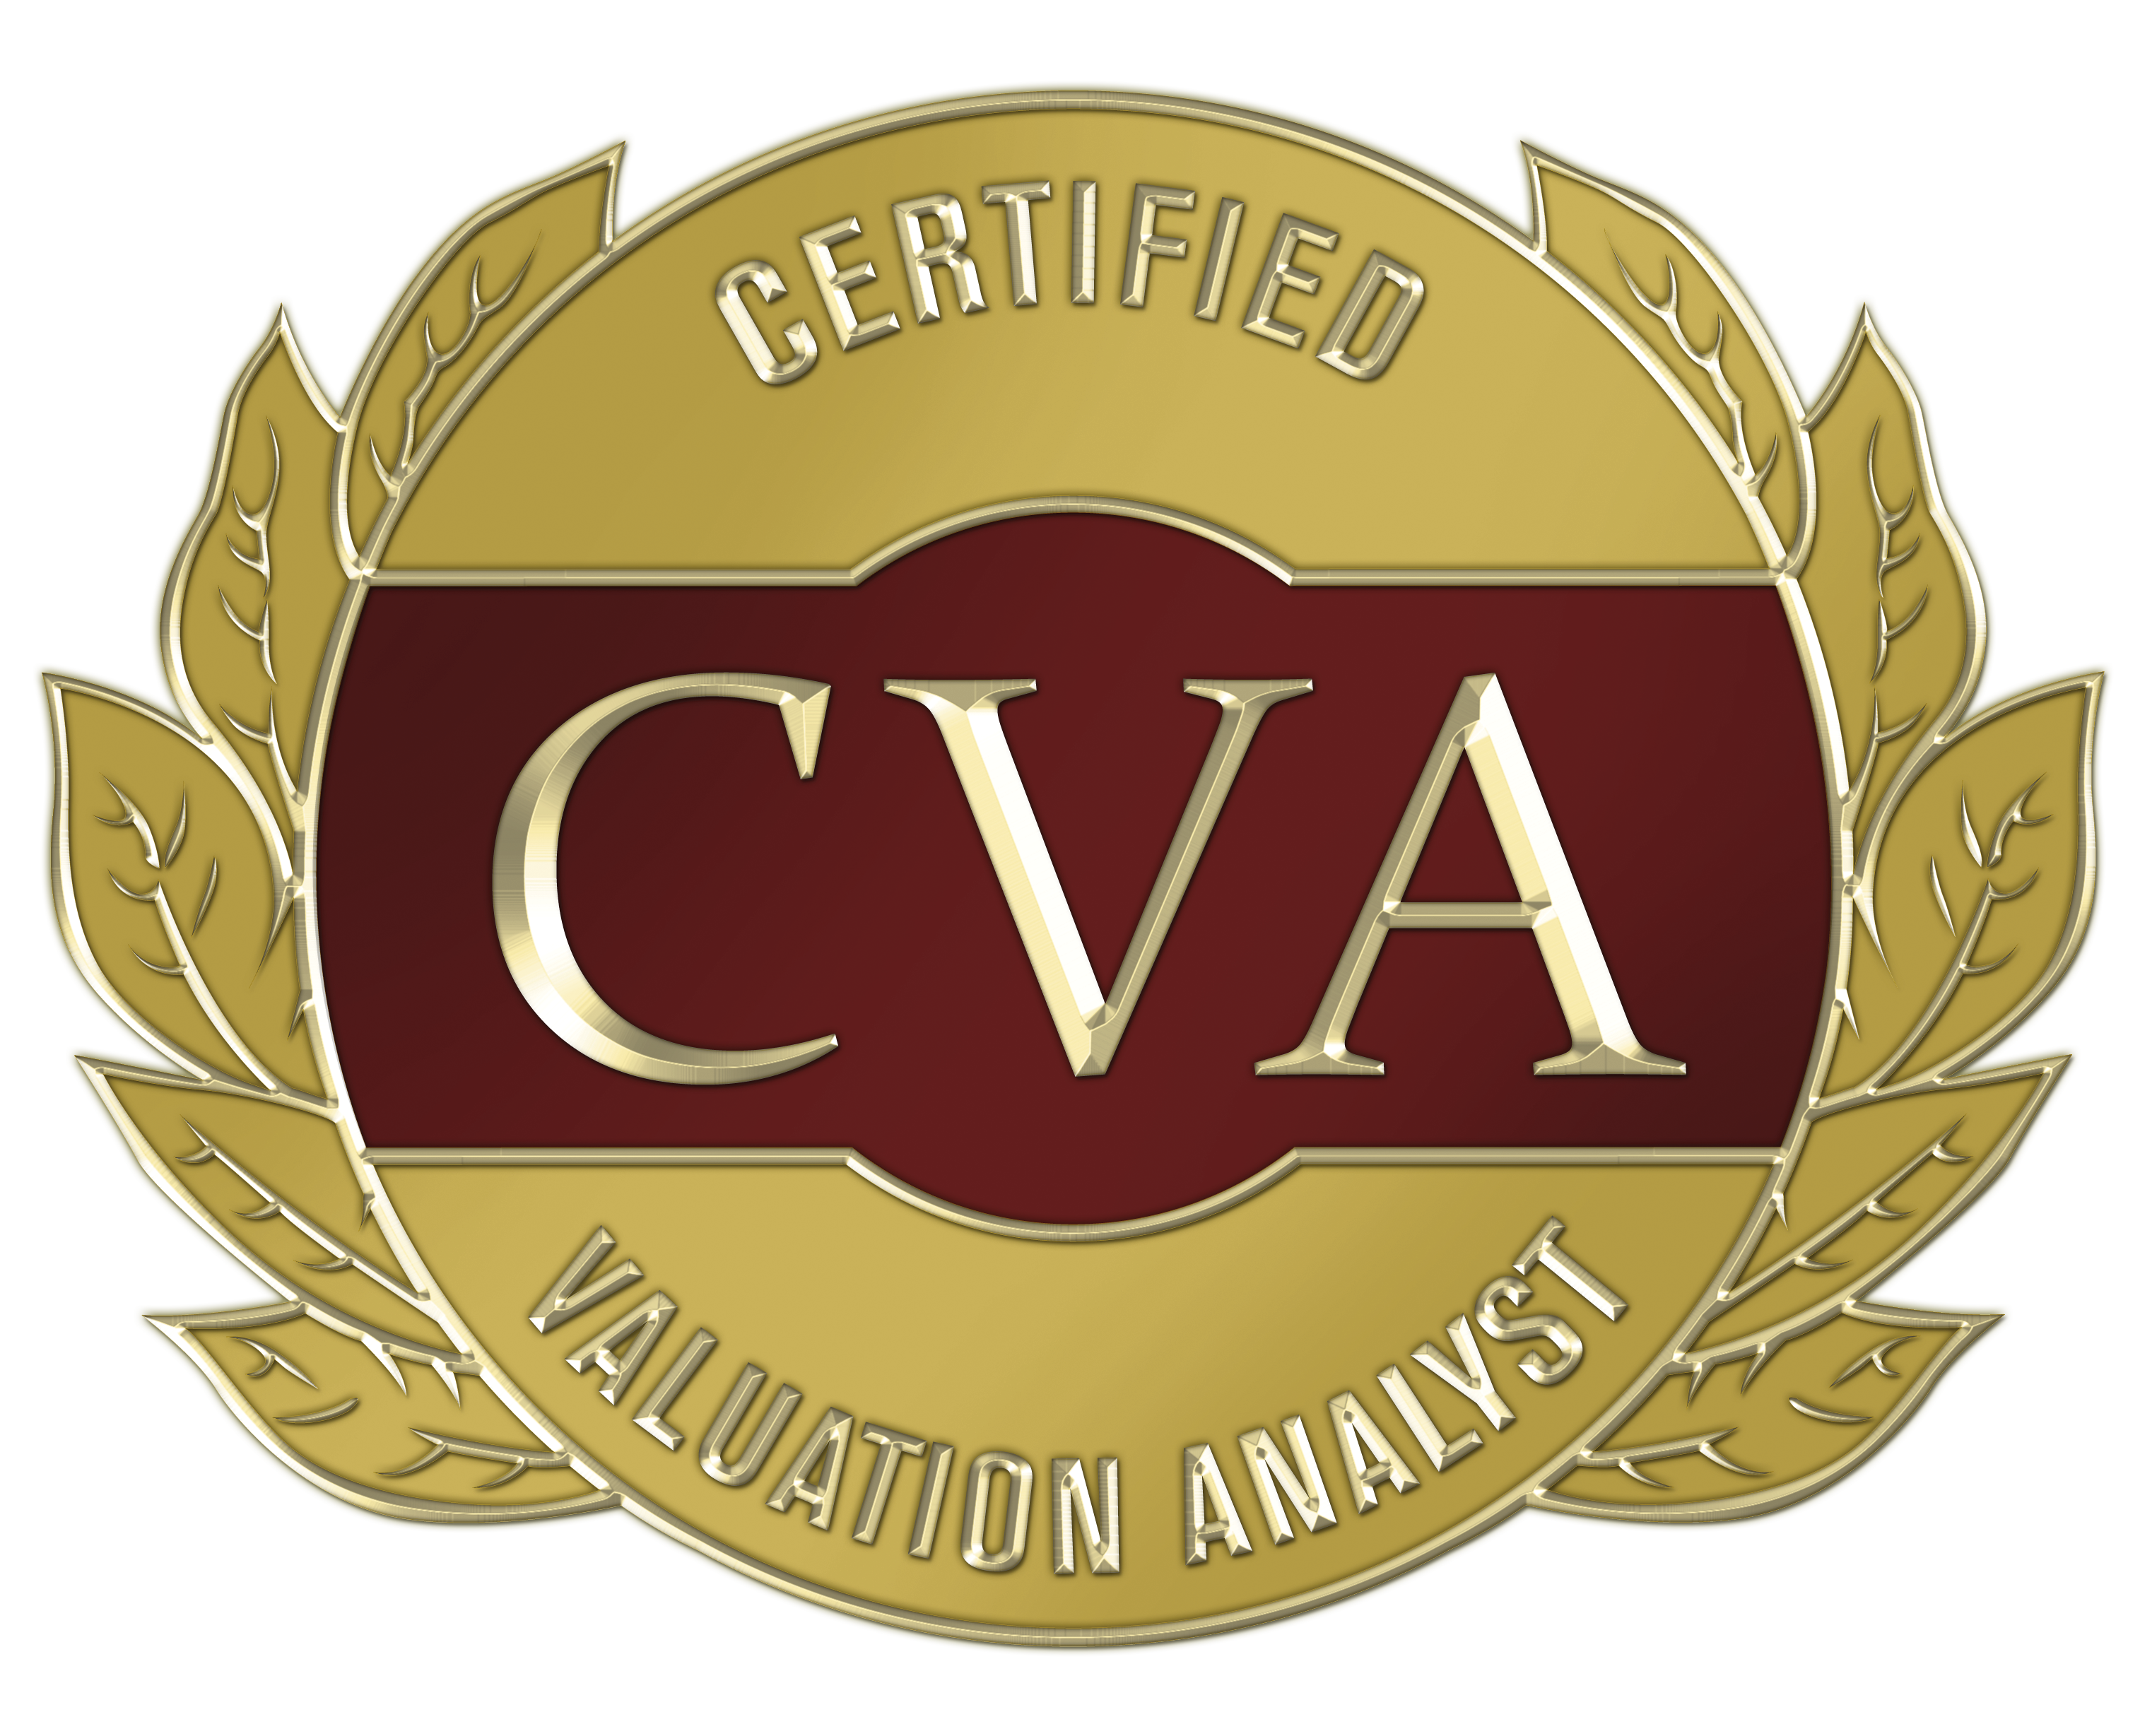 CVA, NACVA Certified Valuation Analyst